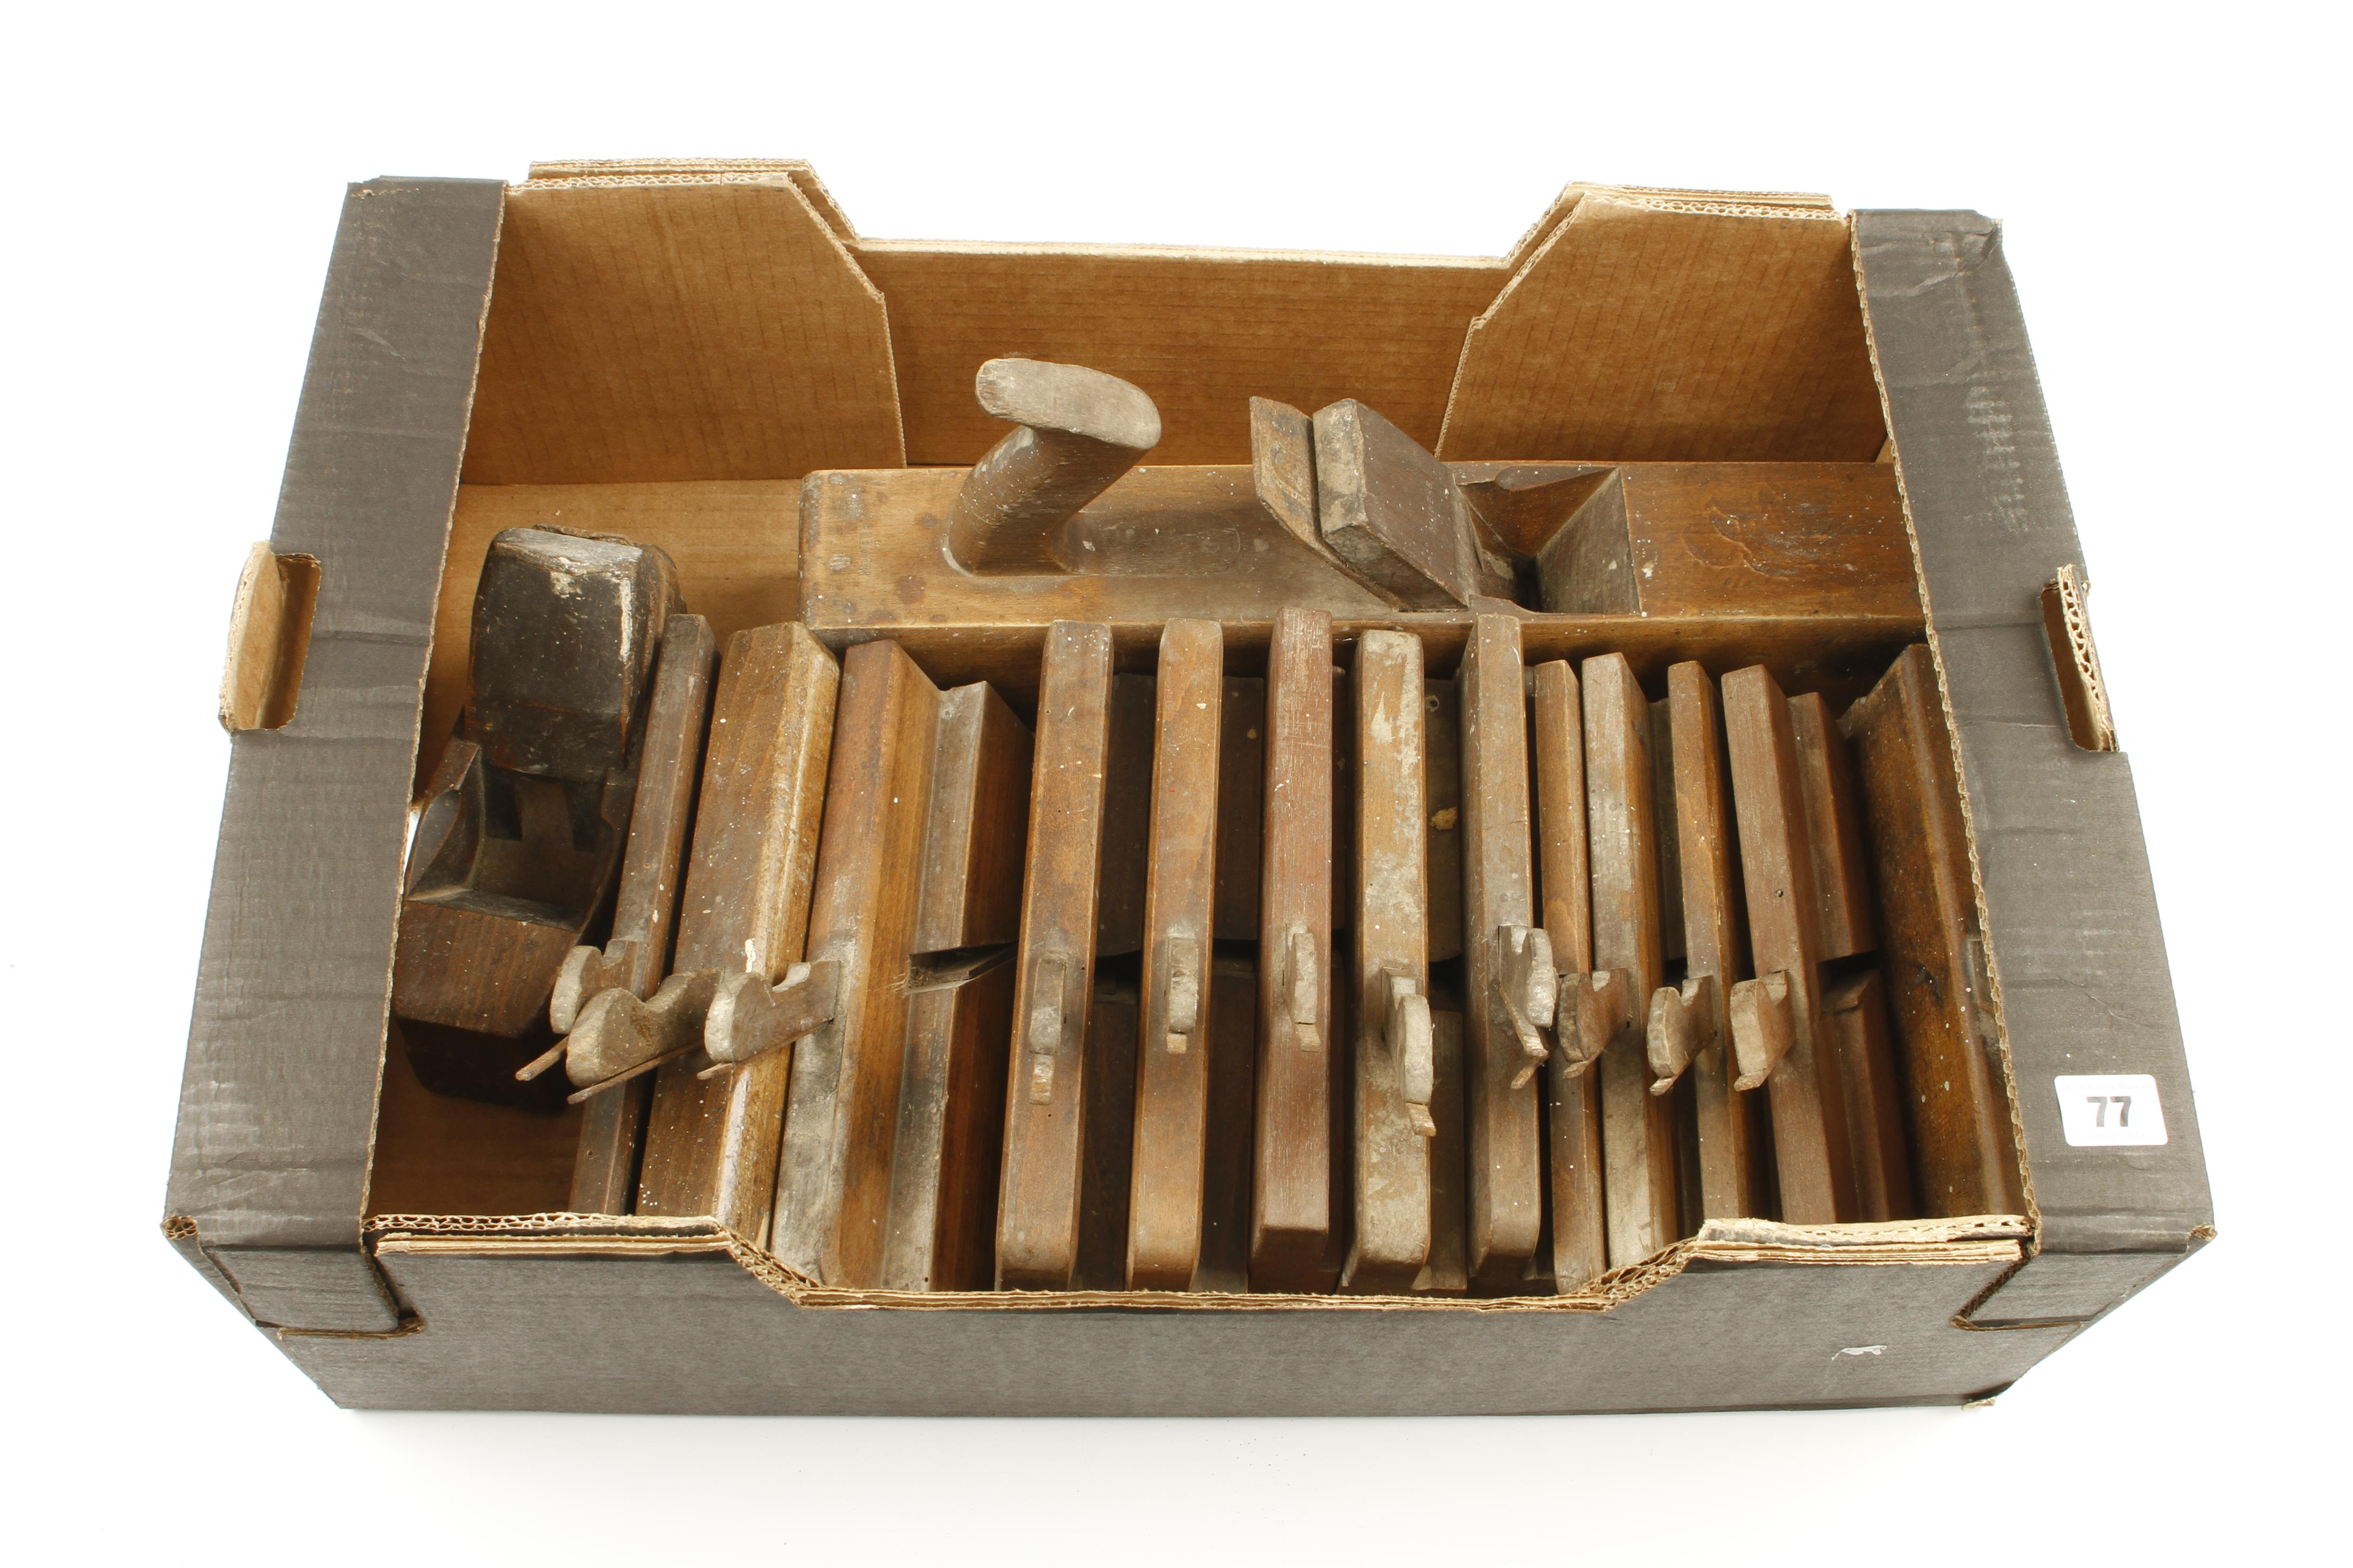 Lot 77 - 13 moulding planes and two other planes G